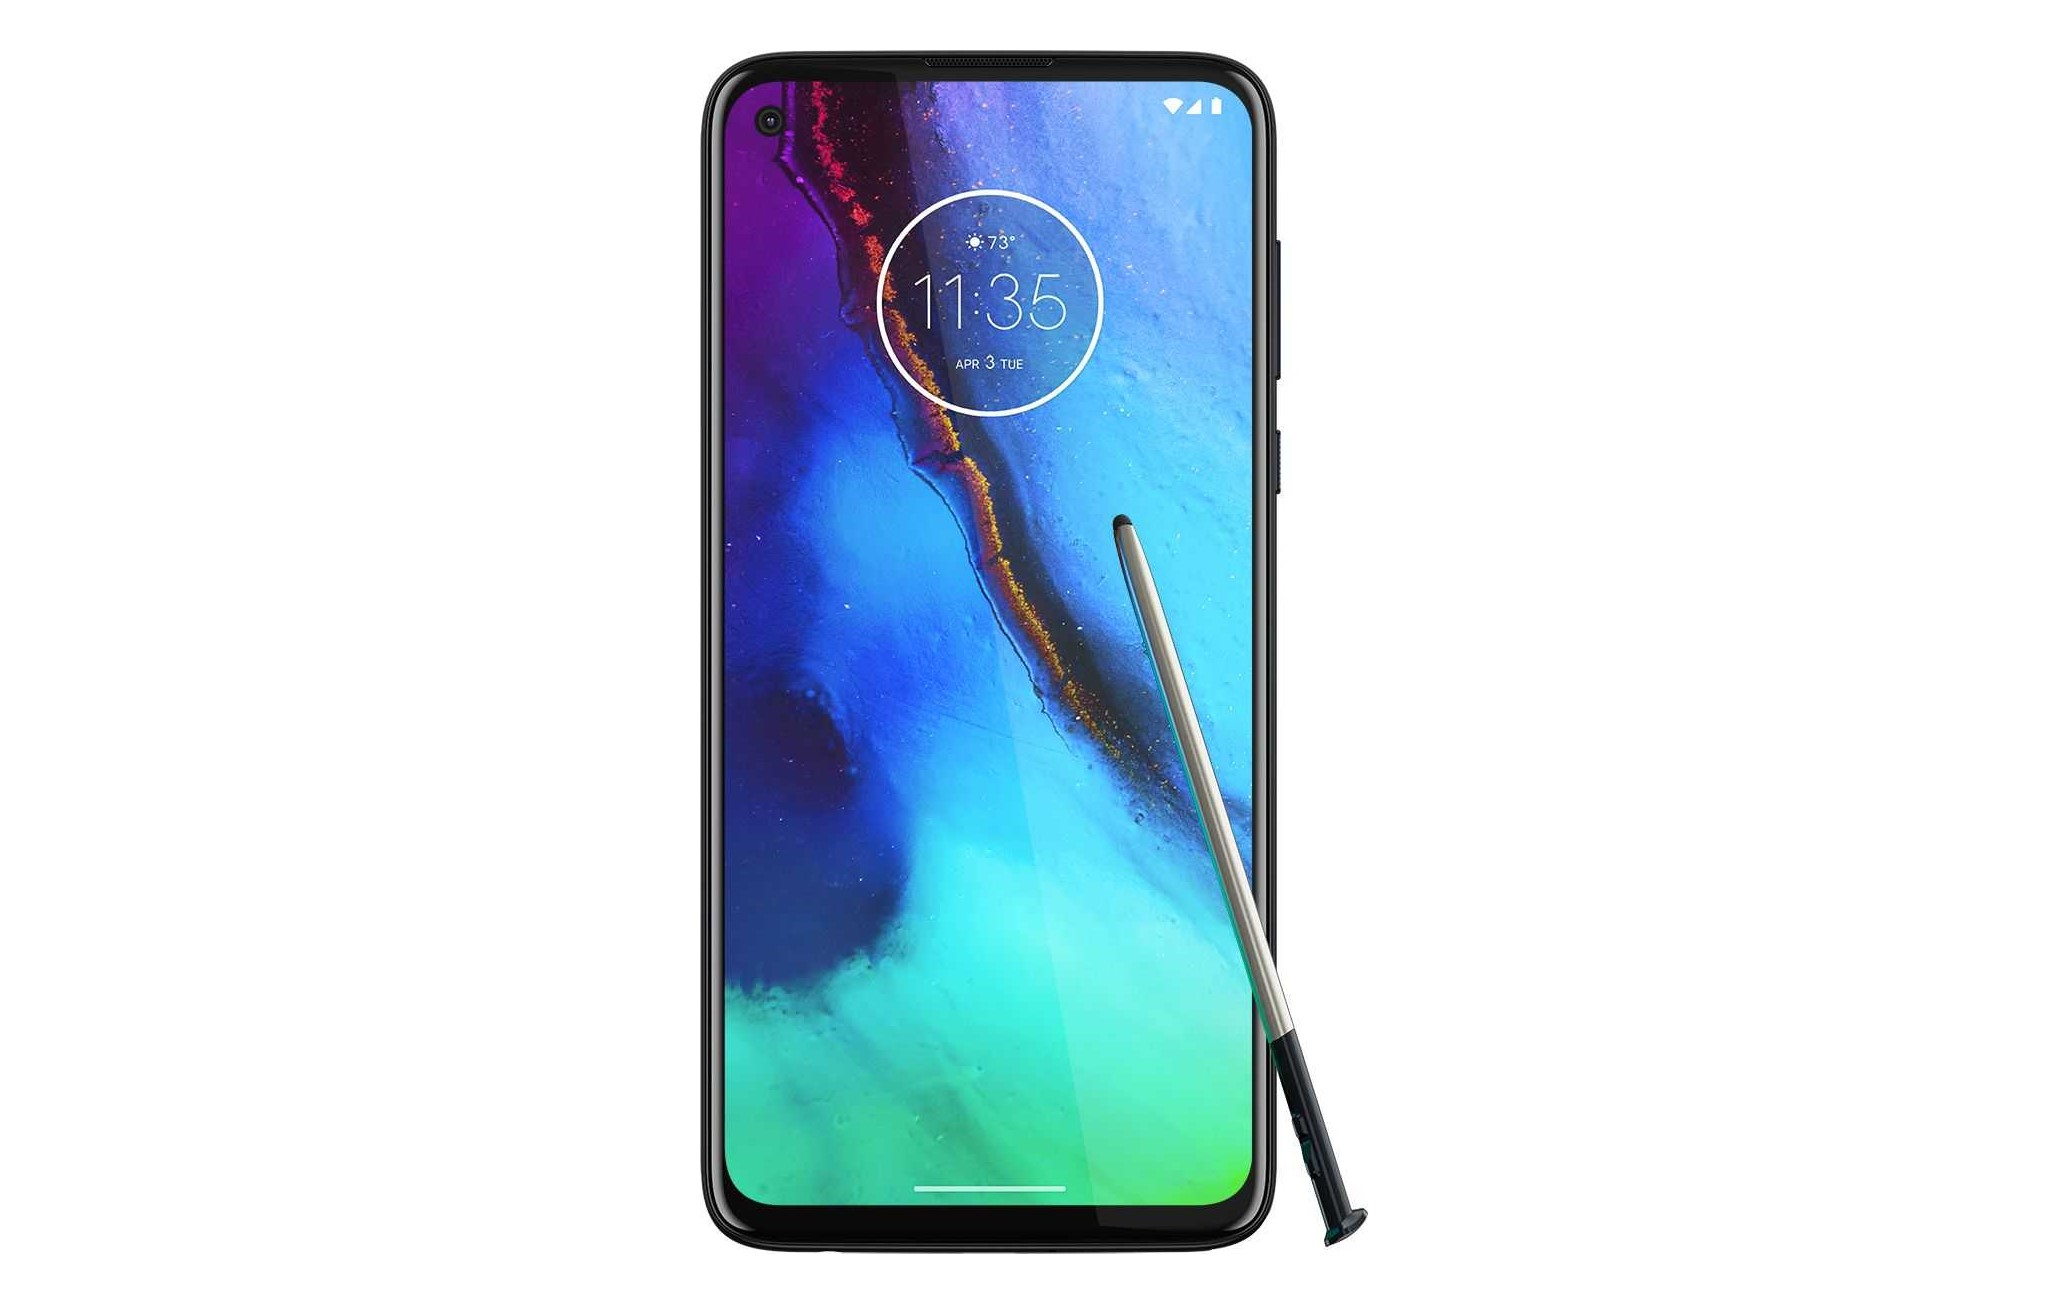 New renders point to a 2020 Motorola device with a stylus - Notebookcheck.net